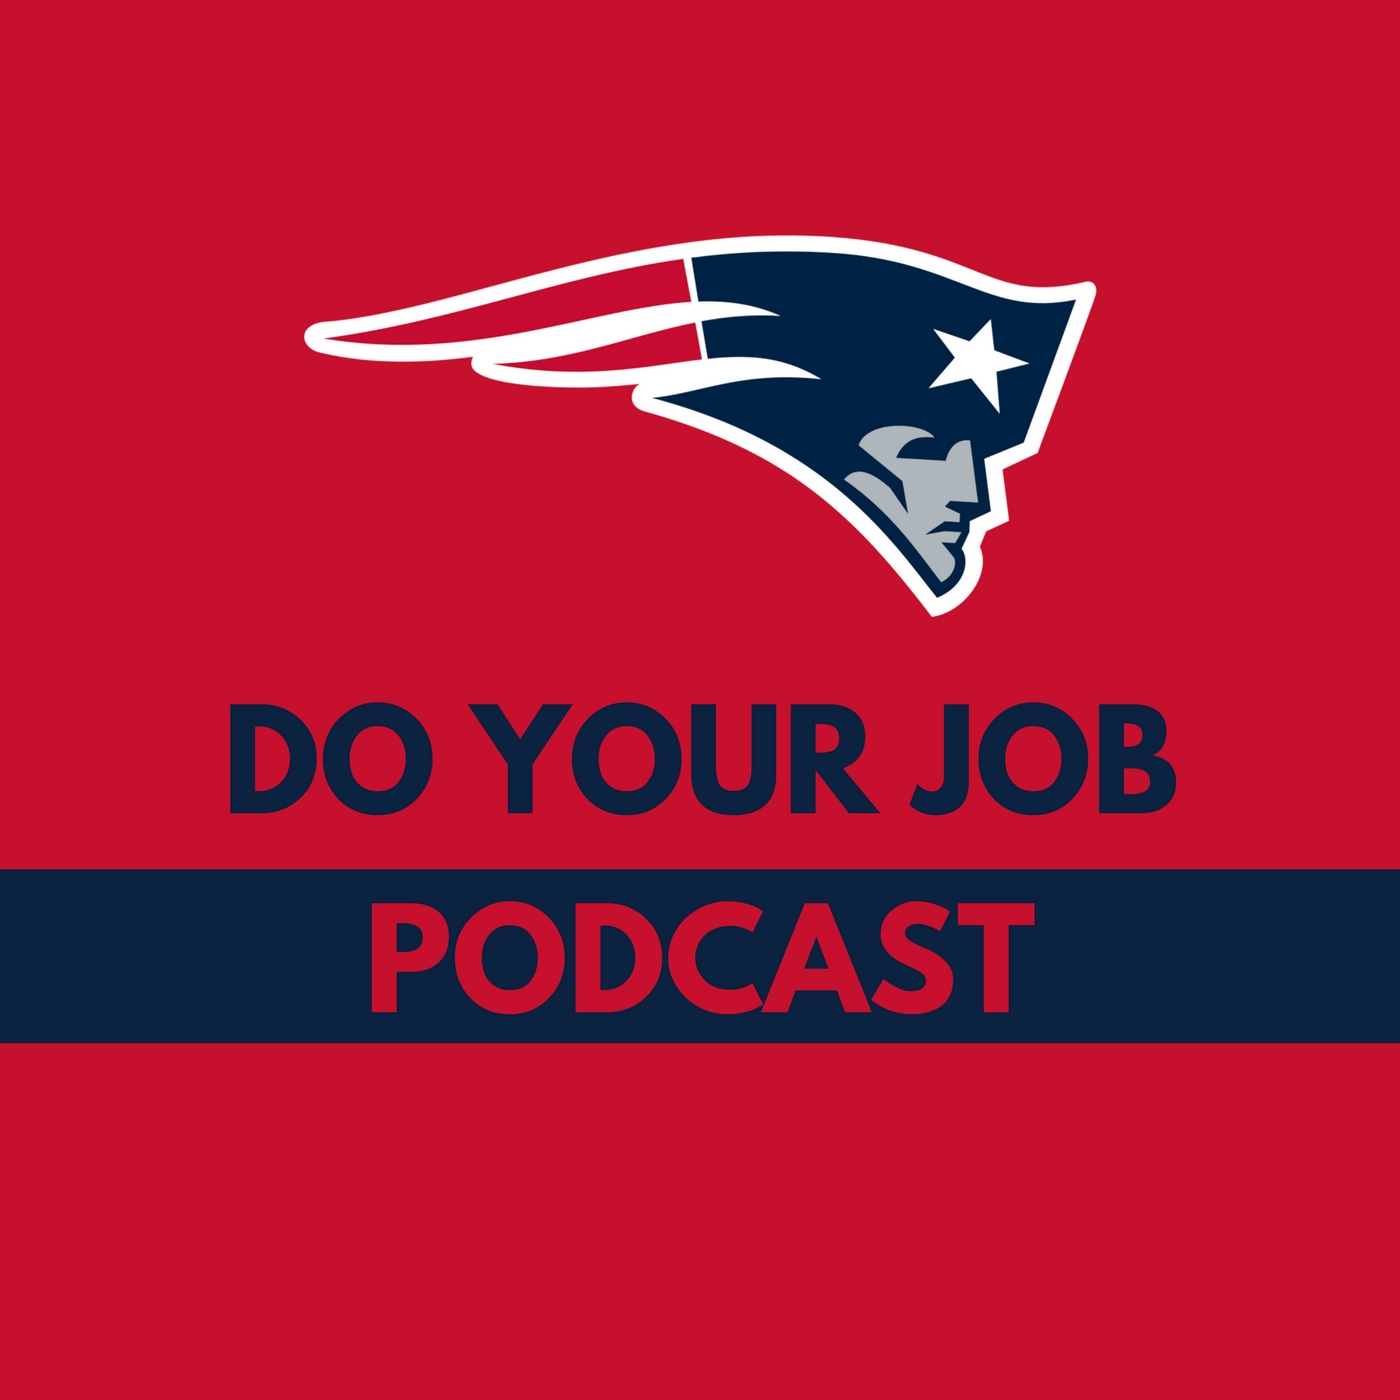 Do Your Job Podcast